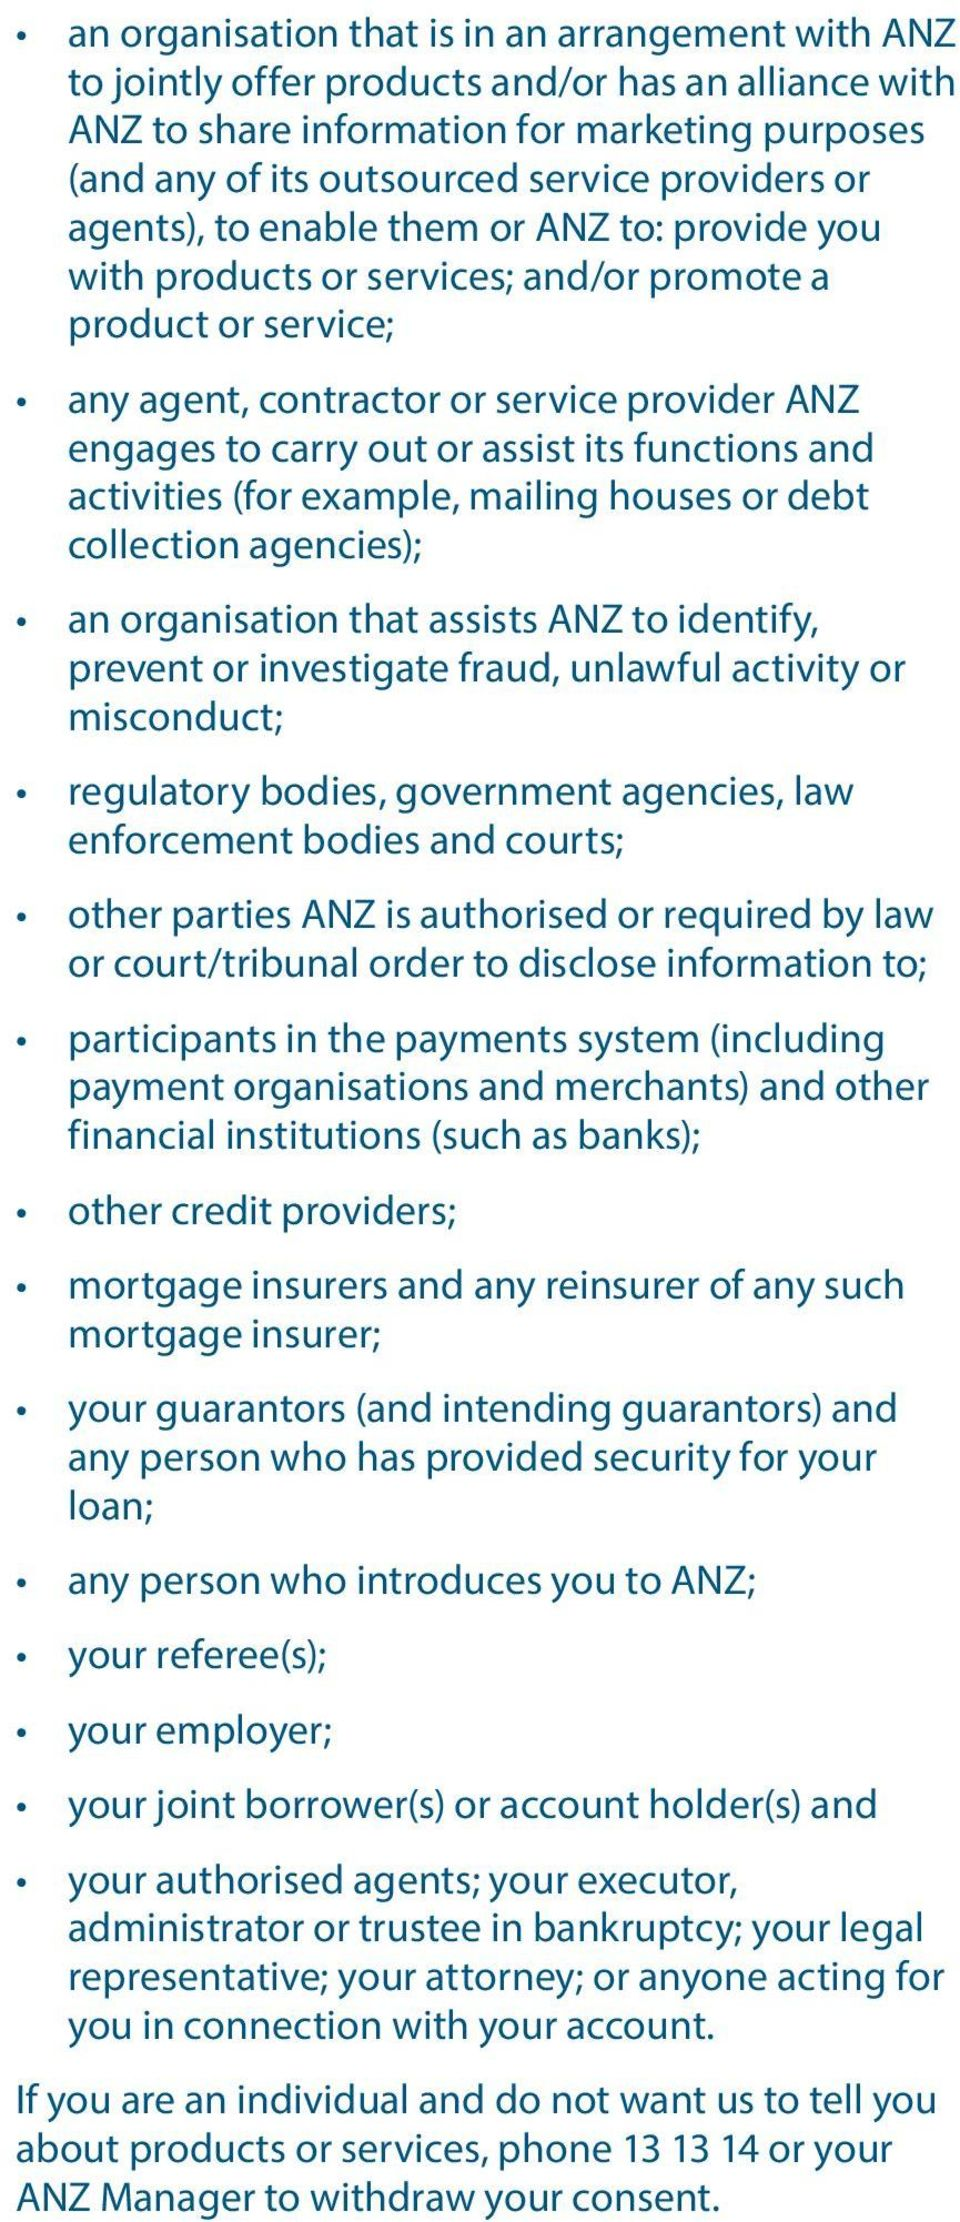 functions and activities (for example, mailing houses or debt collection agencies); an organisation that assists ANZ to identify, prevent or investigate fraud, unlawful activity or misconduct;